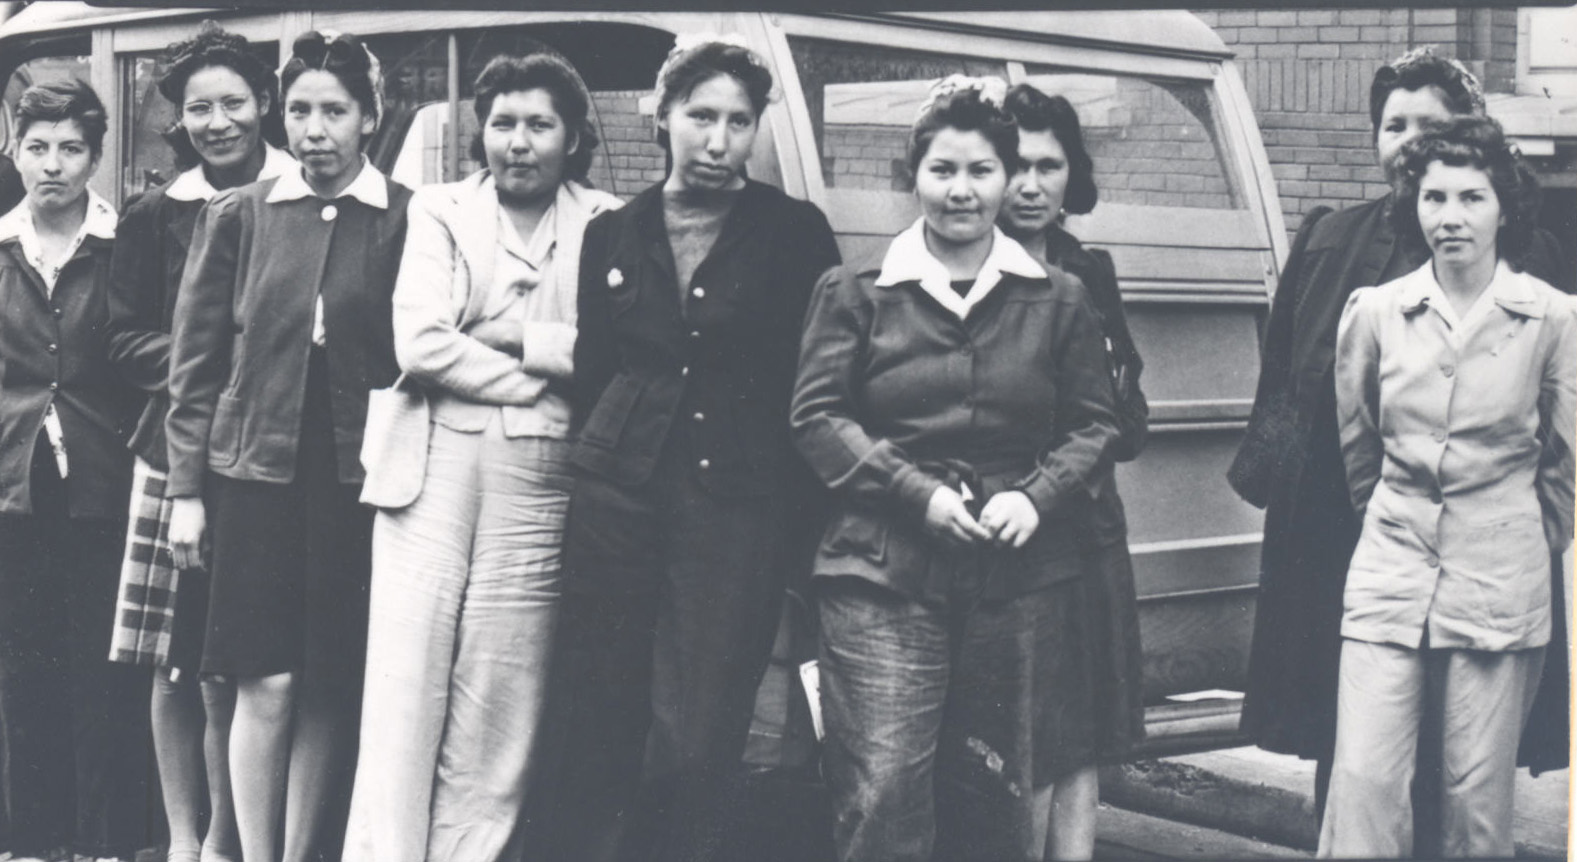 nine_indian_girls_from_chemewa_trained_at_eugene_nya_school_for_work_in_portland_shipyards_1942_013610_sm